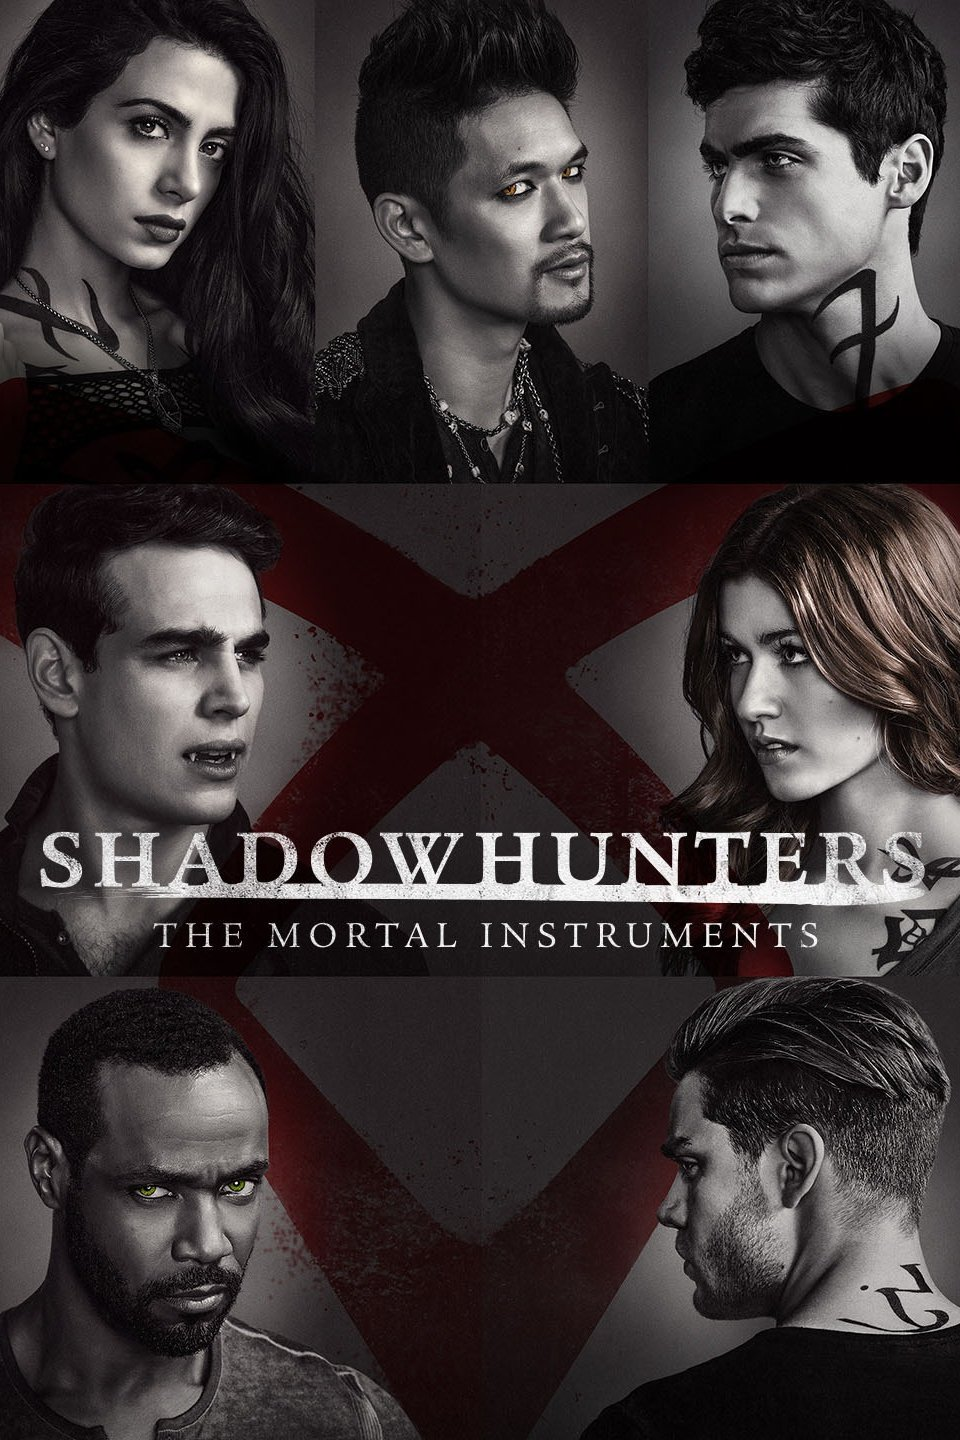 Shadowhunters: The Mortal Instruments-Shadowhunters Season 1